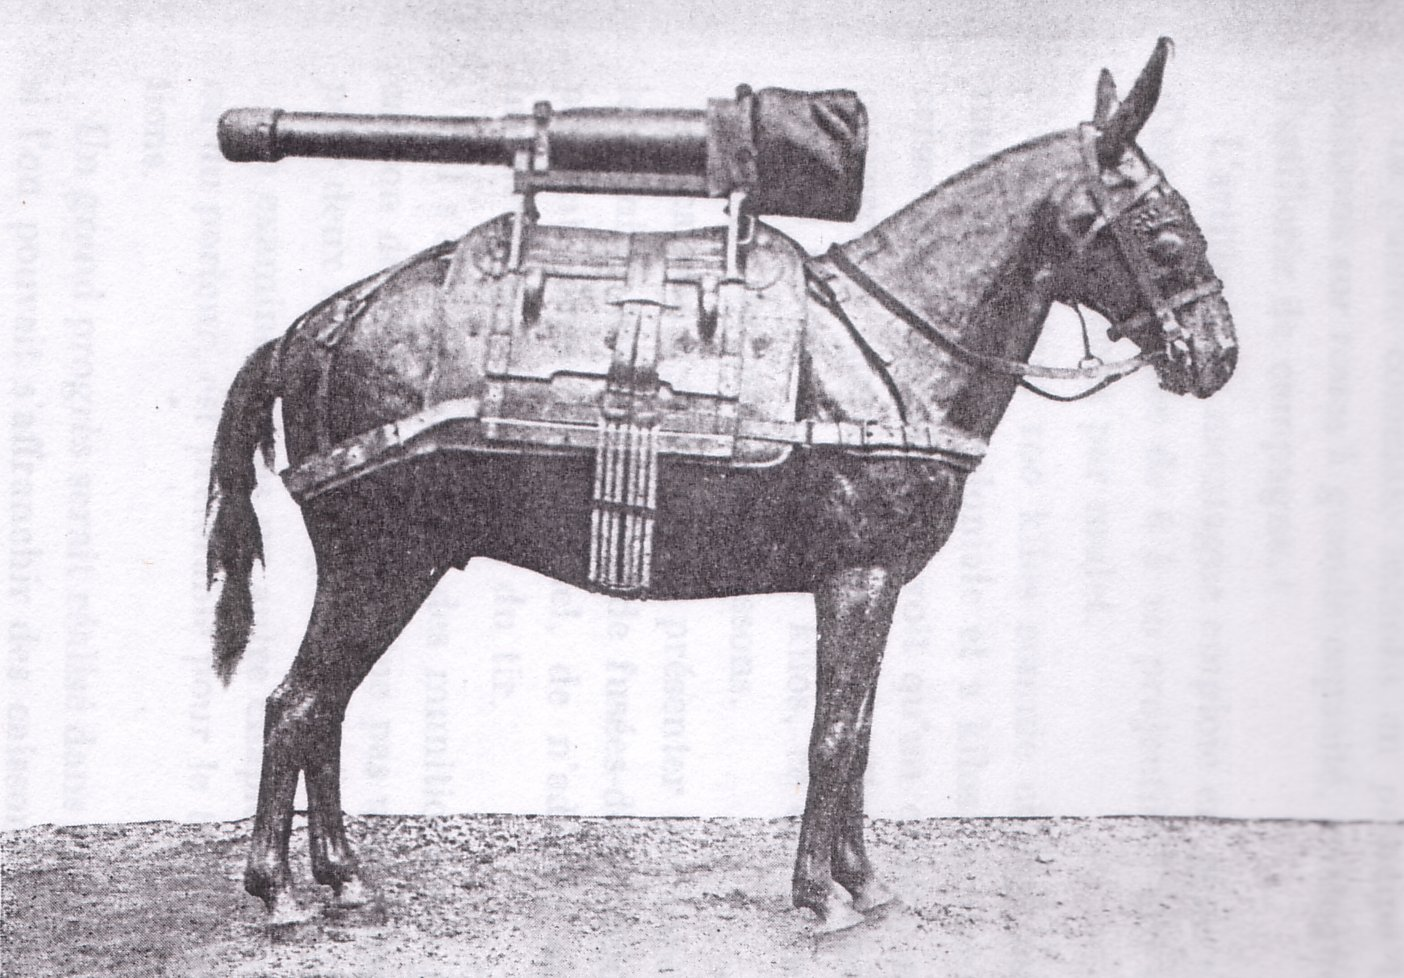 70mm Howitzer Barrel mounted on a pack mule